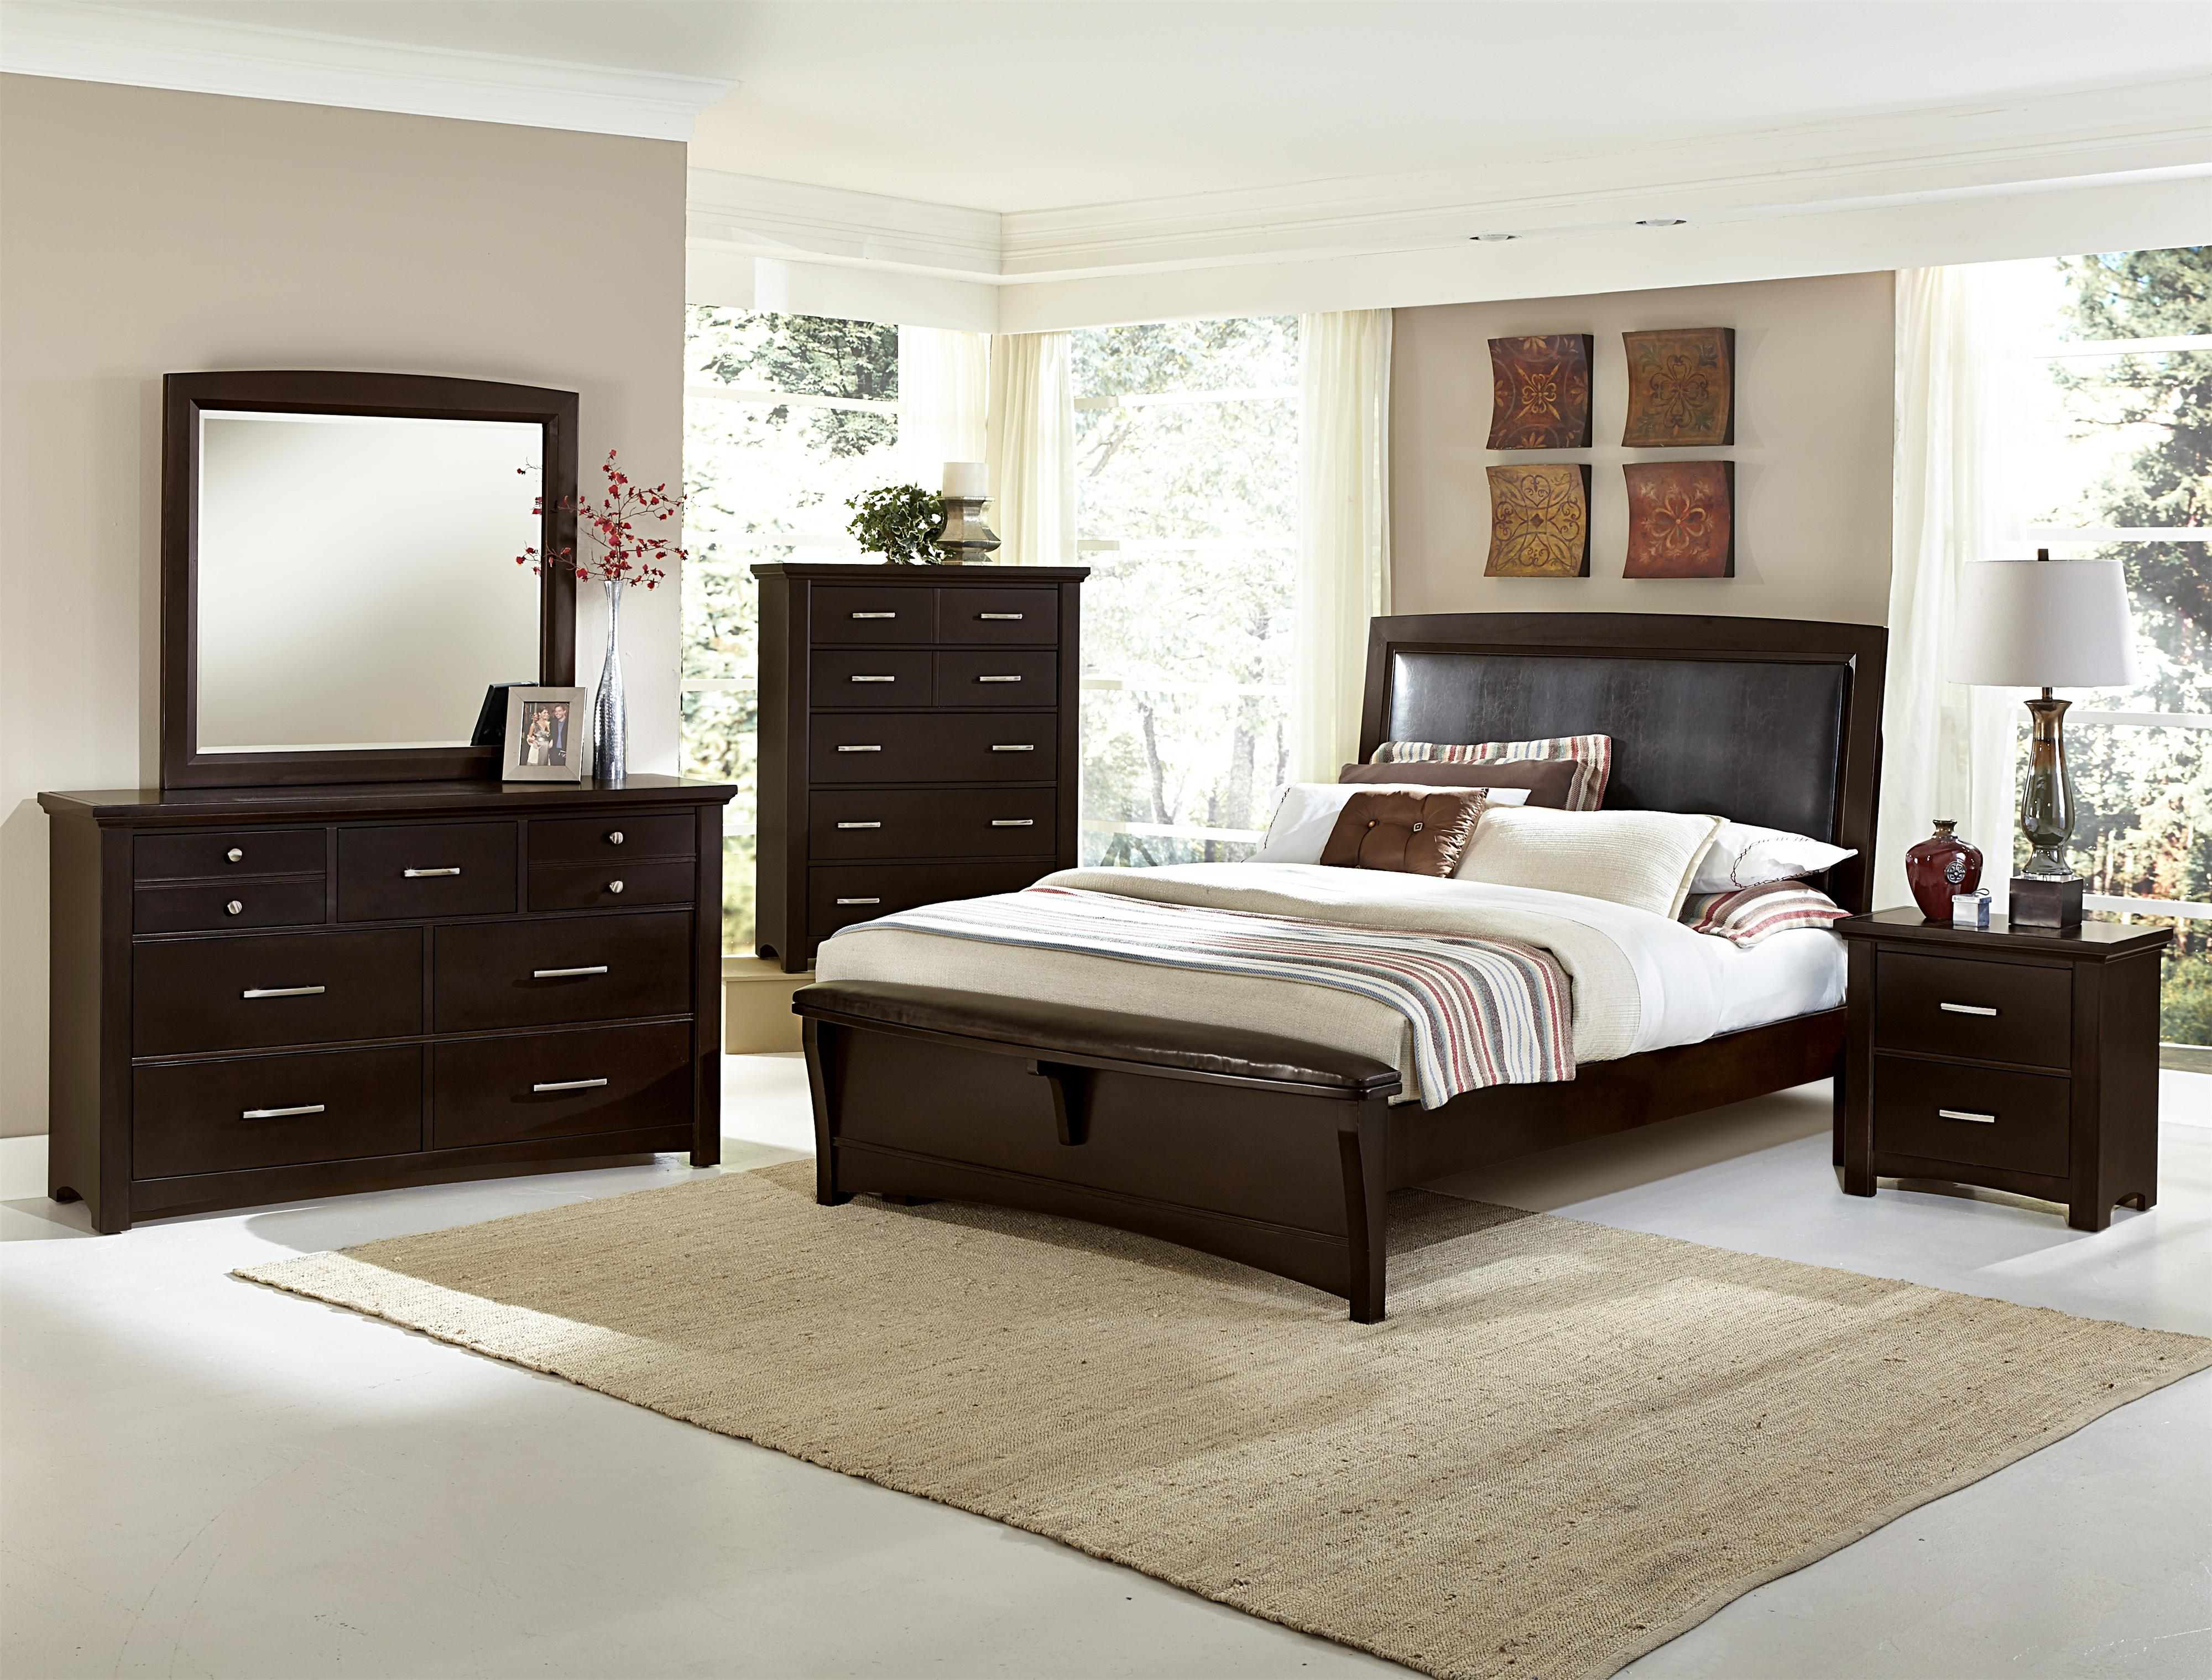 Wondrous Transitions Queen Bedroom Group By Vaughan Bassett At Value City Furniture Interior Design Ideas Tzicisoteloinfo